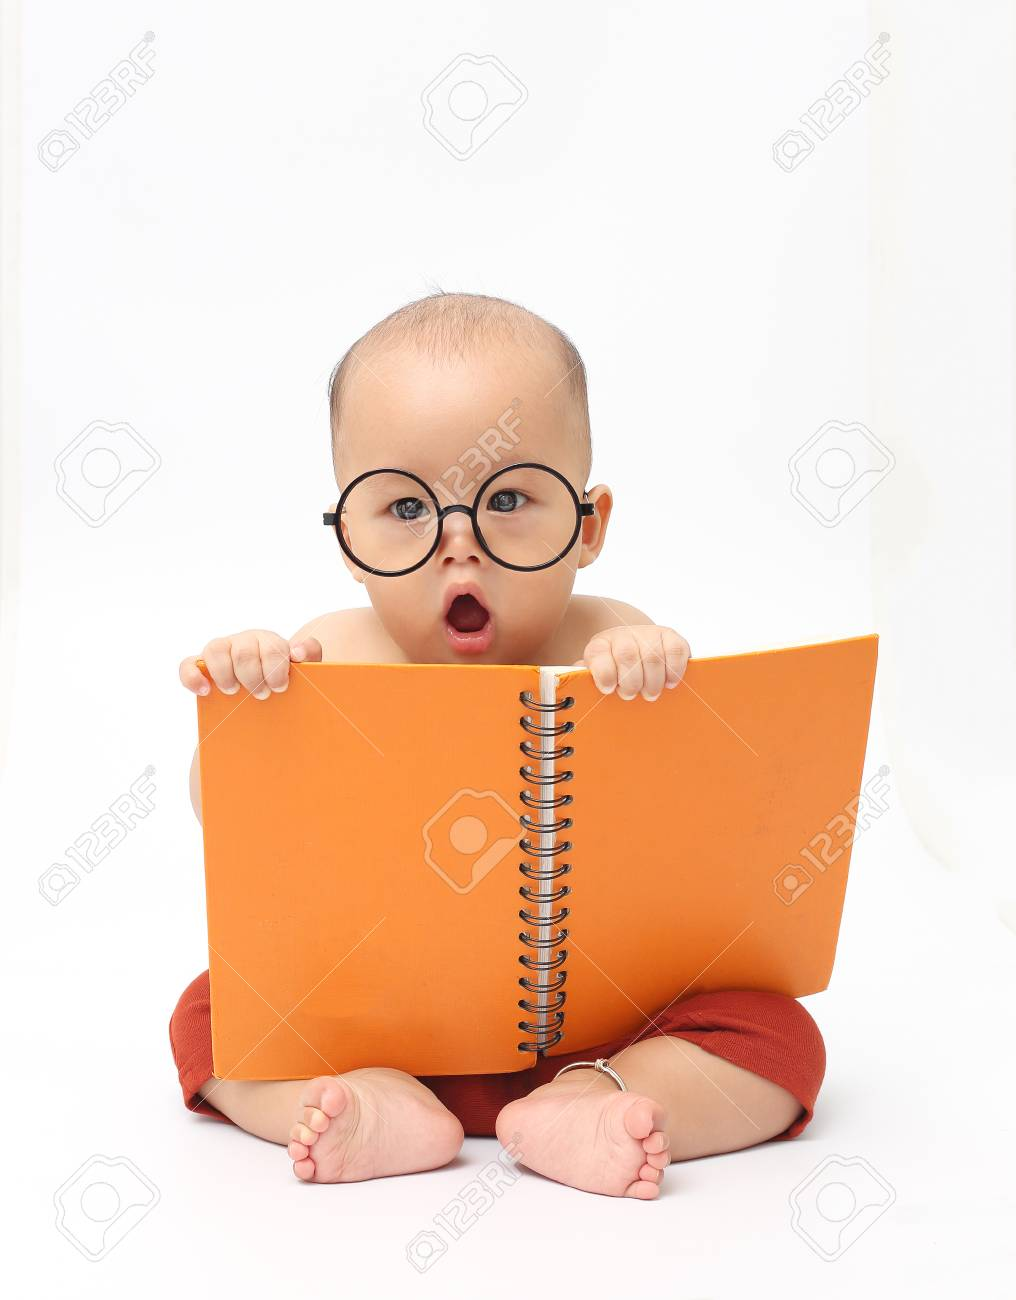 cute baby wear eyeglasses and reading big book stock photo, picture